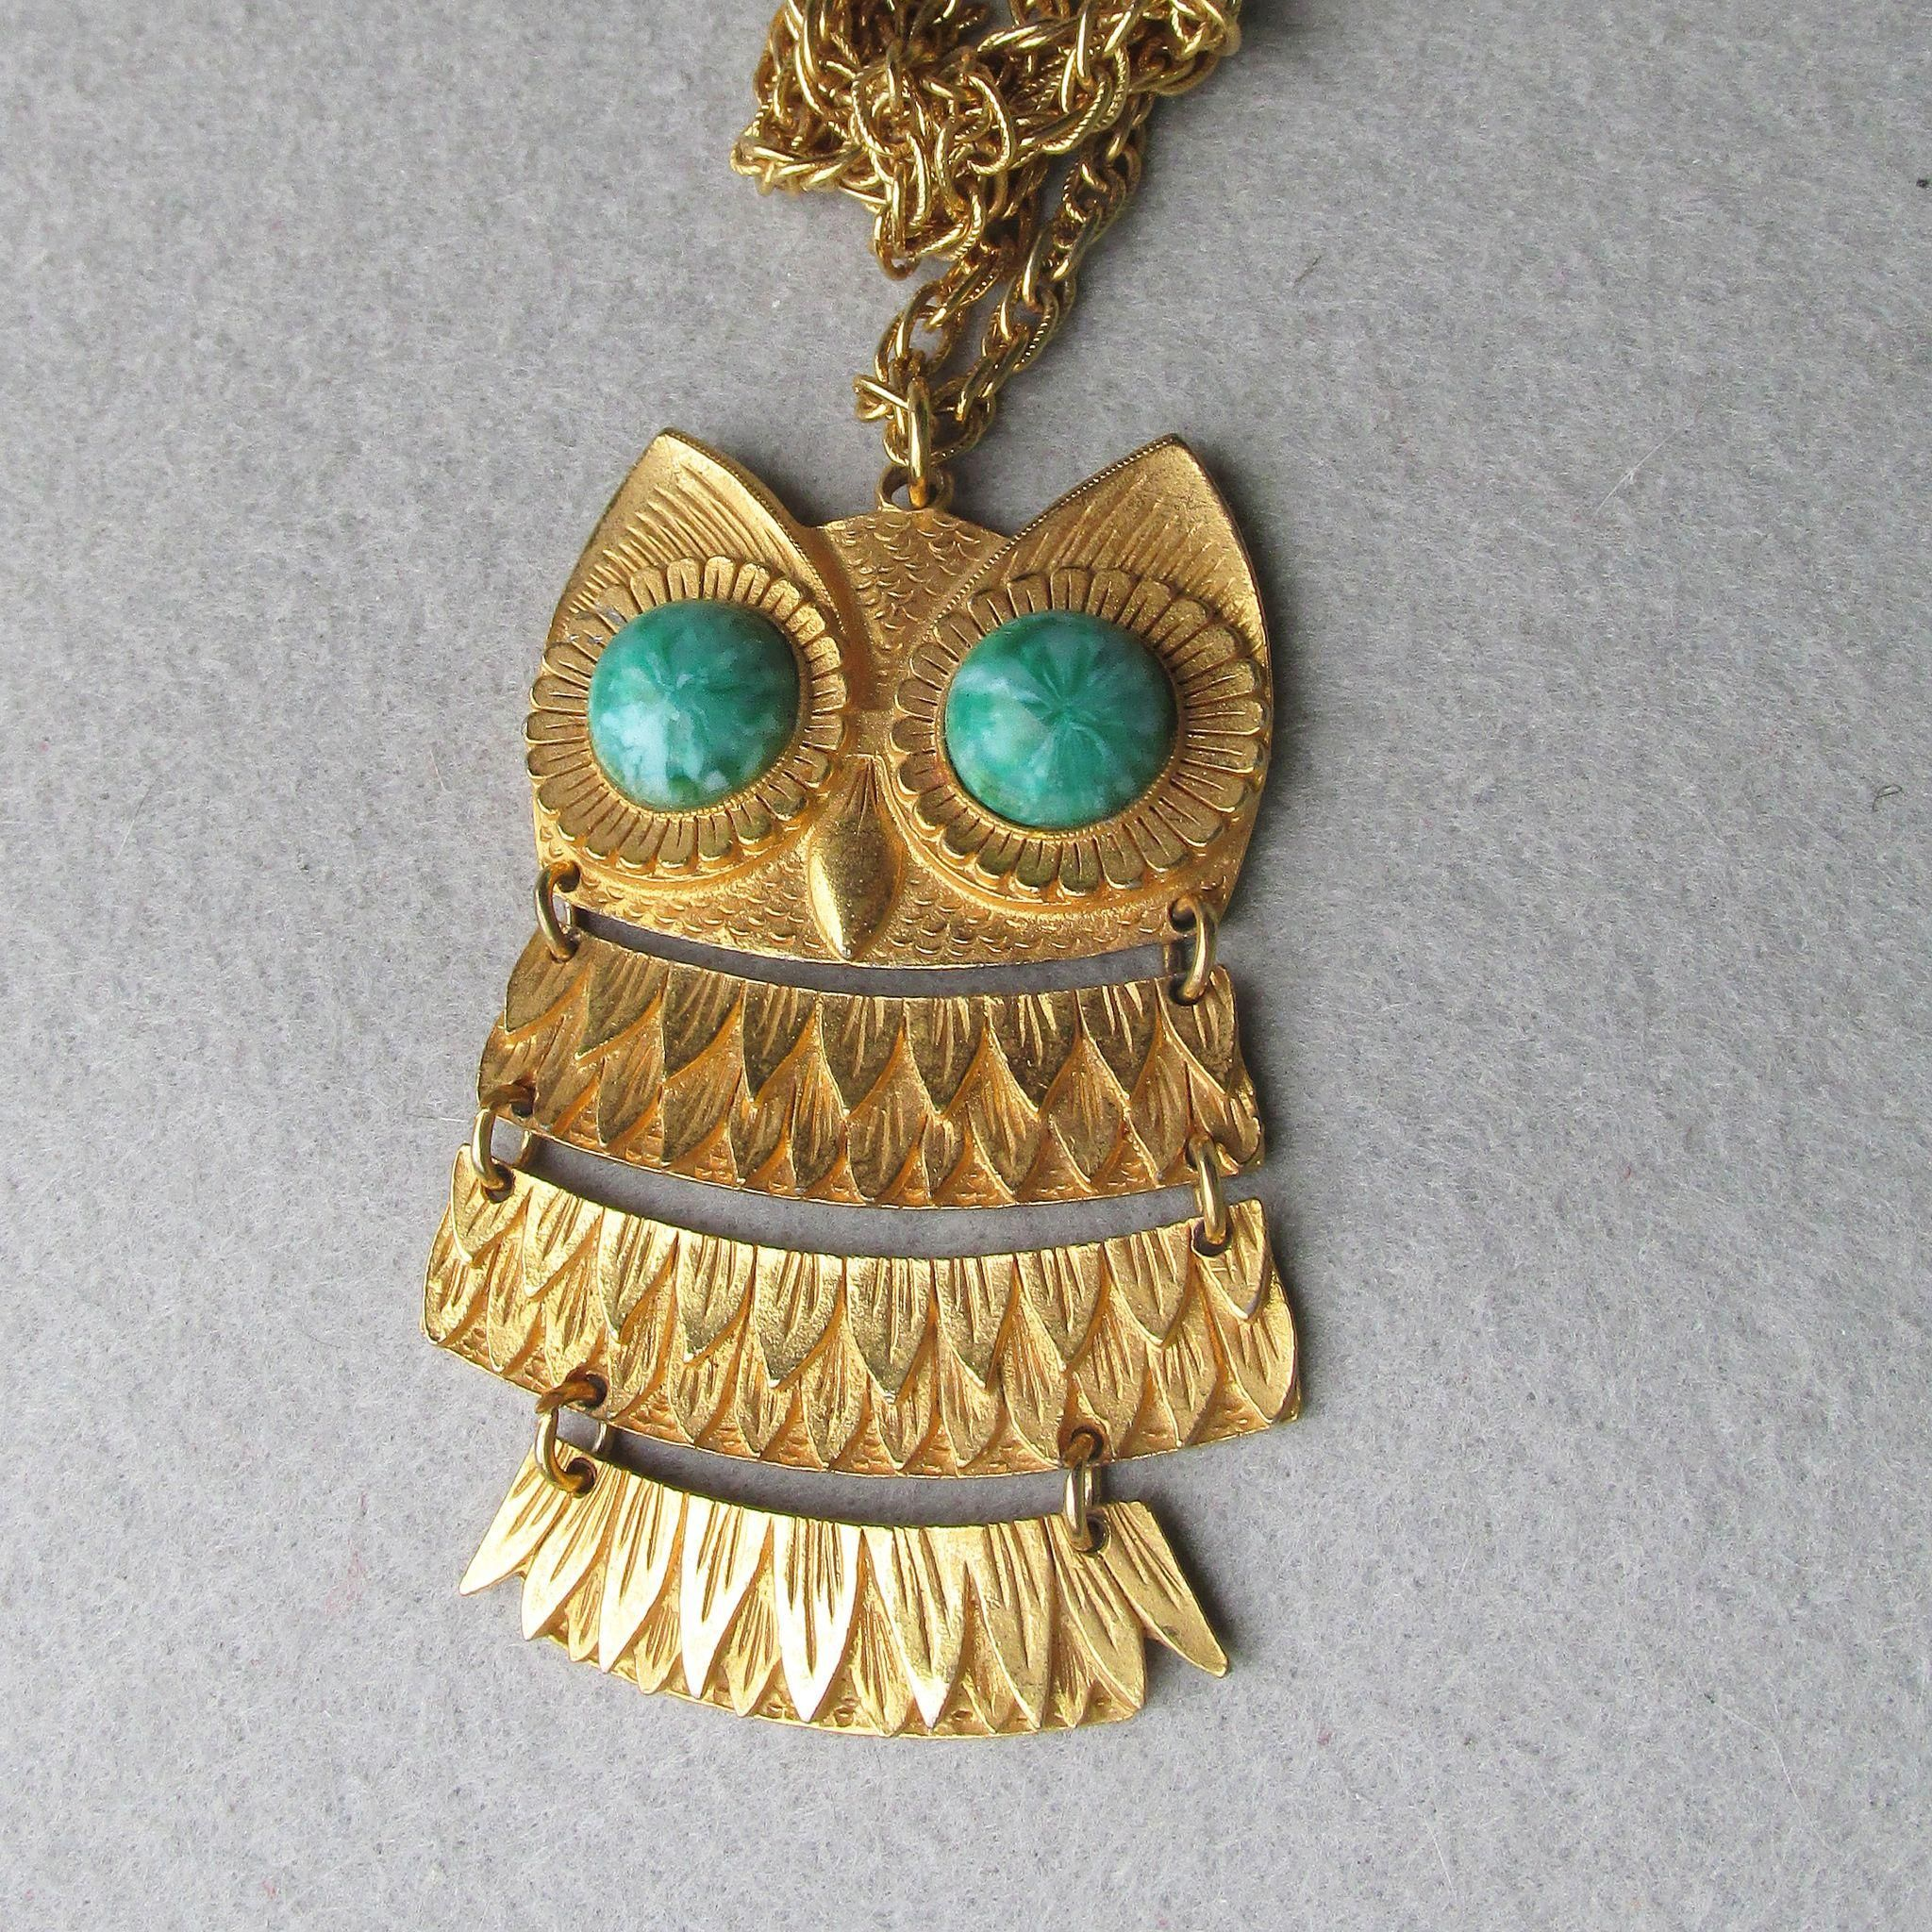 Cute vintage us articulated owl pendant necklace faux jade